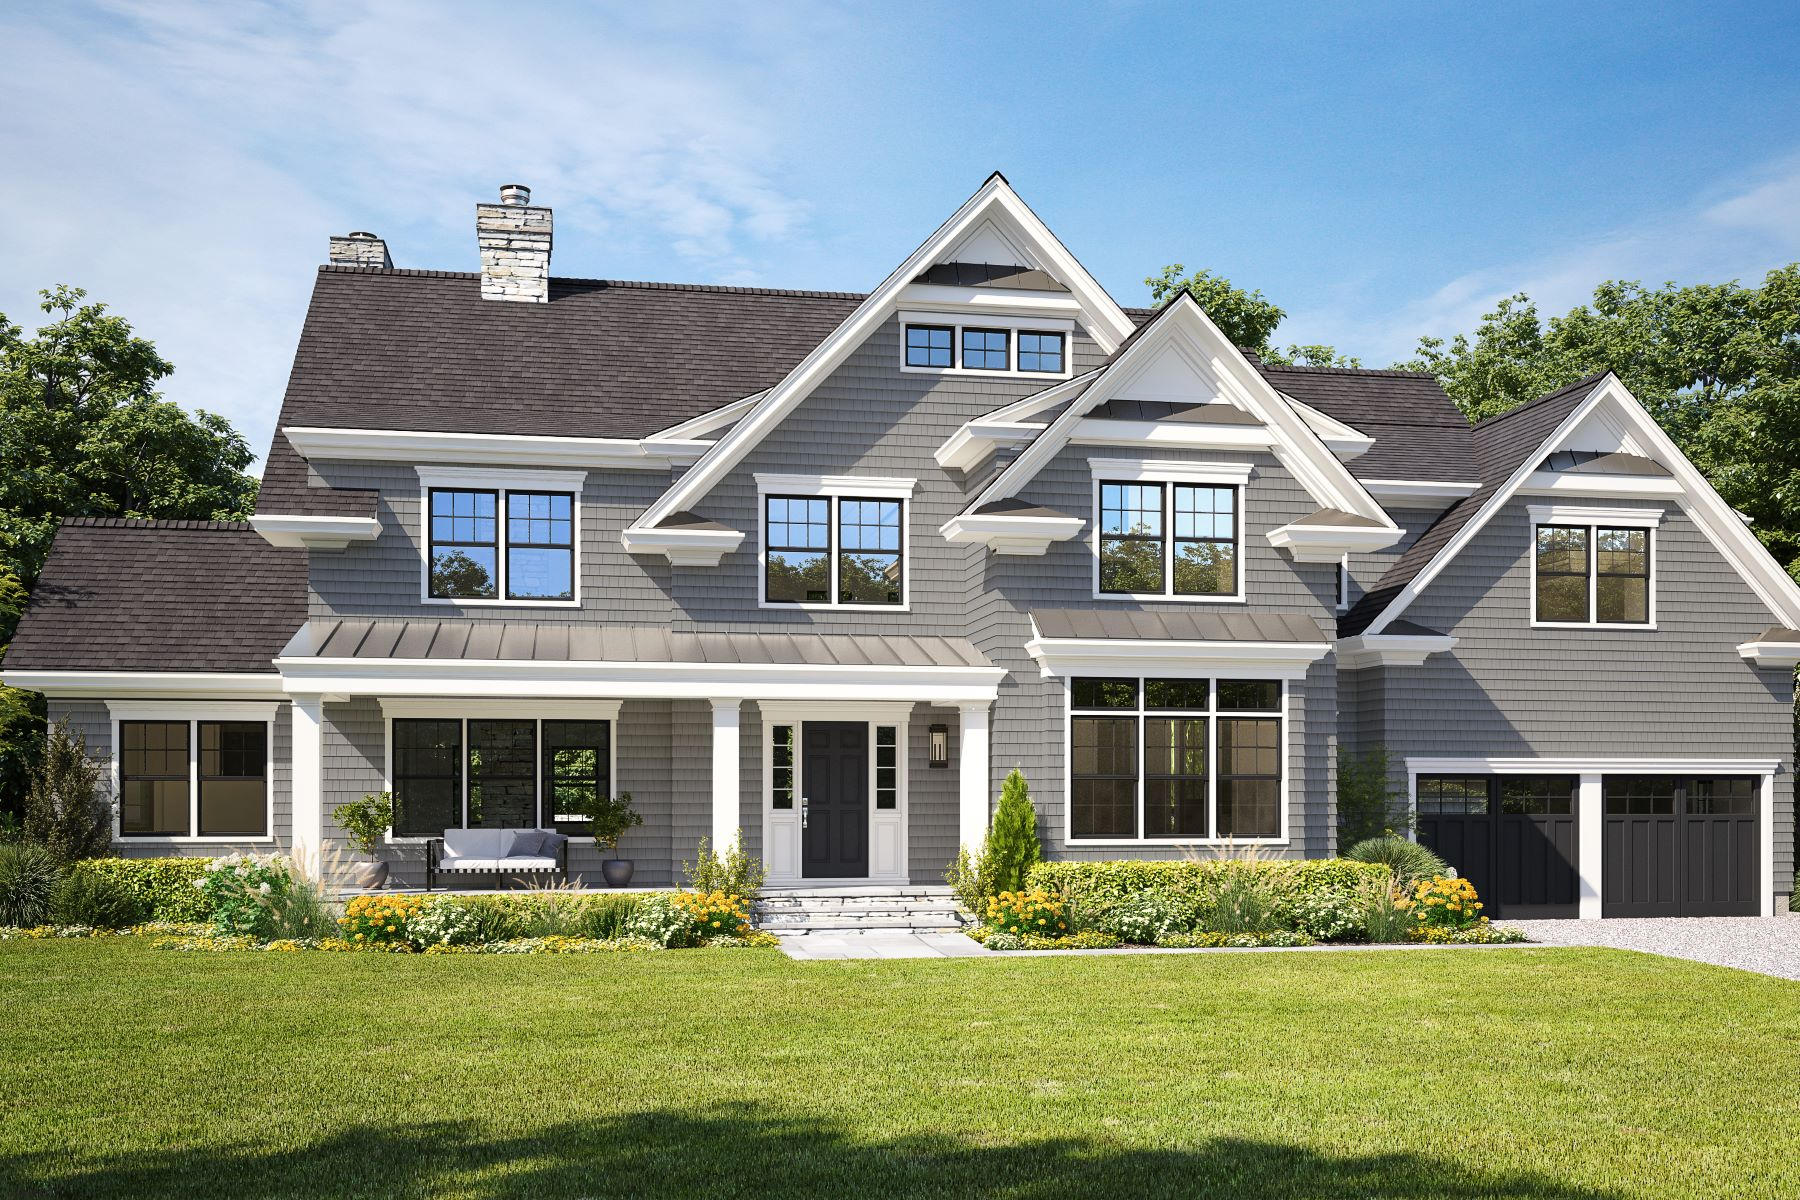 Single Family Homes for Active at 13 Eve Lane Rye, New York 10580 United States